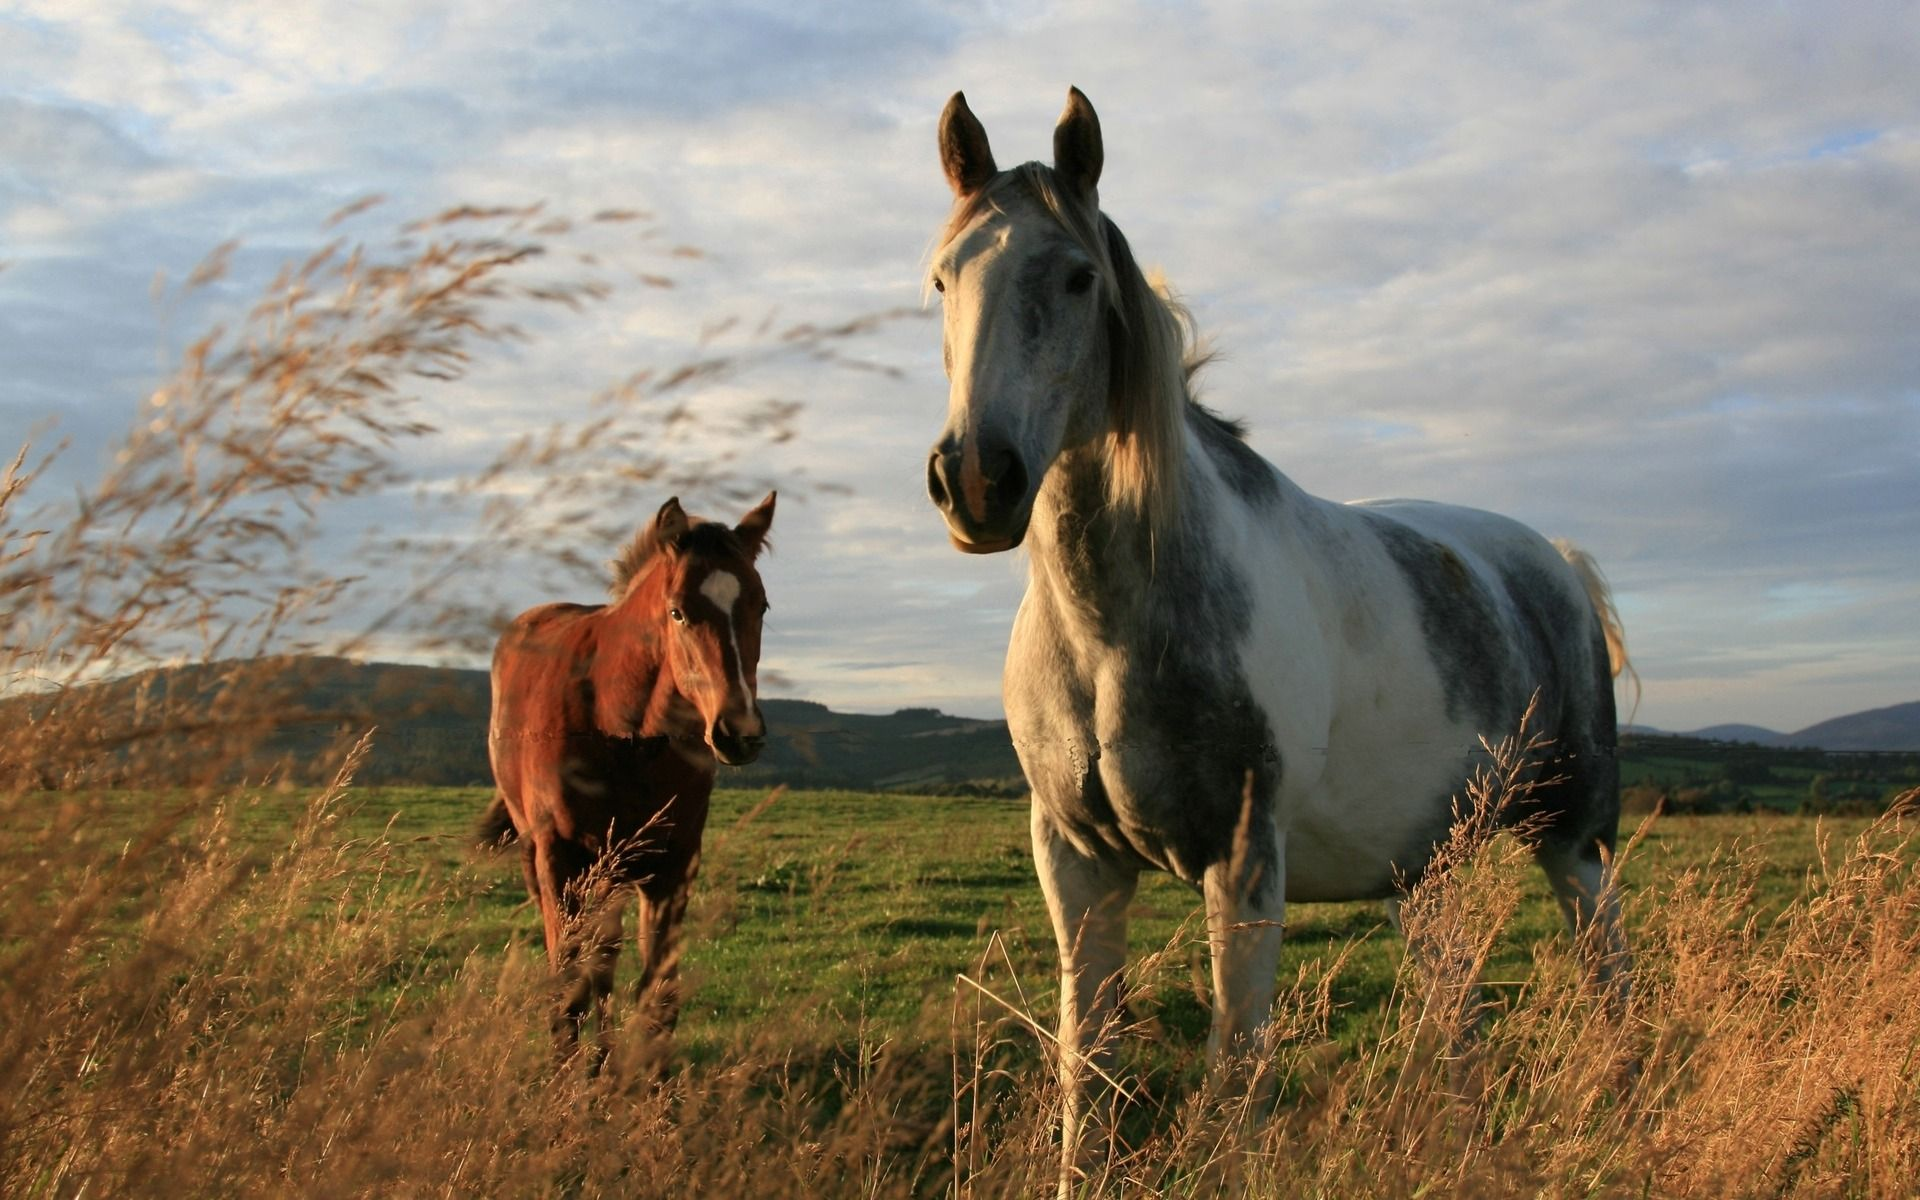 Cool Wallpaper Horse Couple - cf586c79340a10f8a32b878fdd524ea0  Photograph_14367.jpg